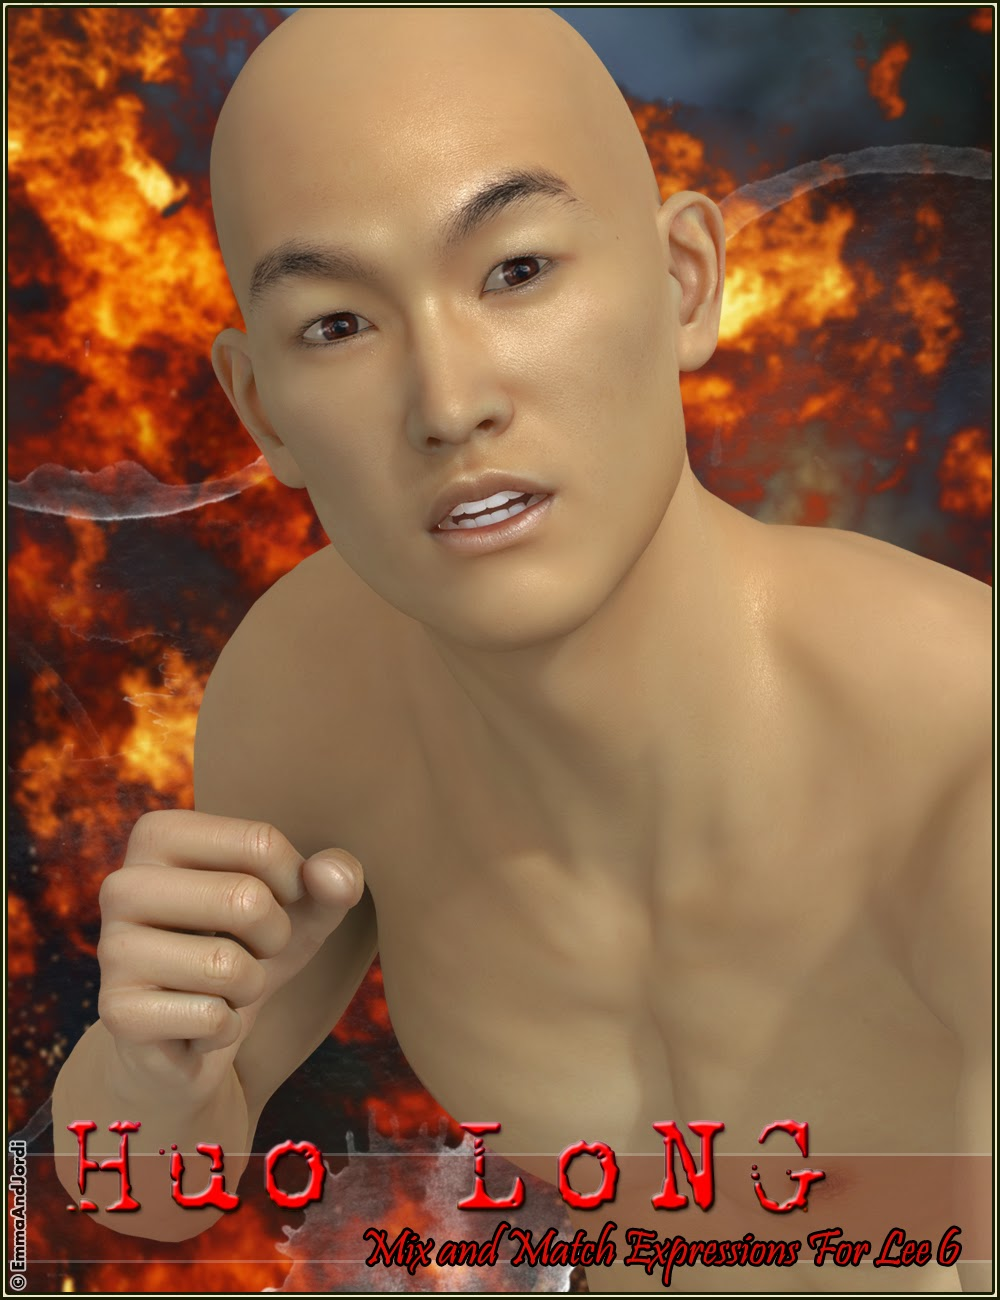 http://www.daz3d.com/huo-long-mix-and-match-expressions-for-lee-6